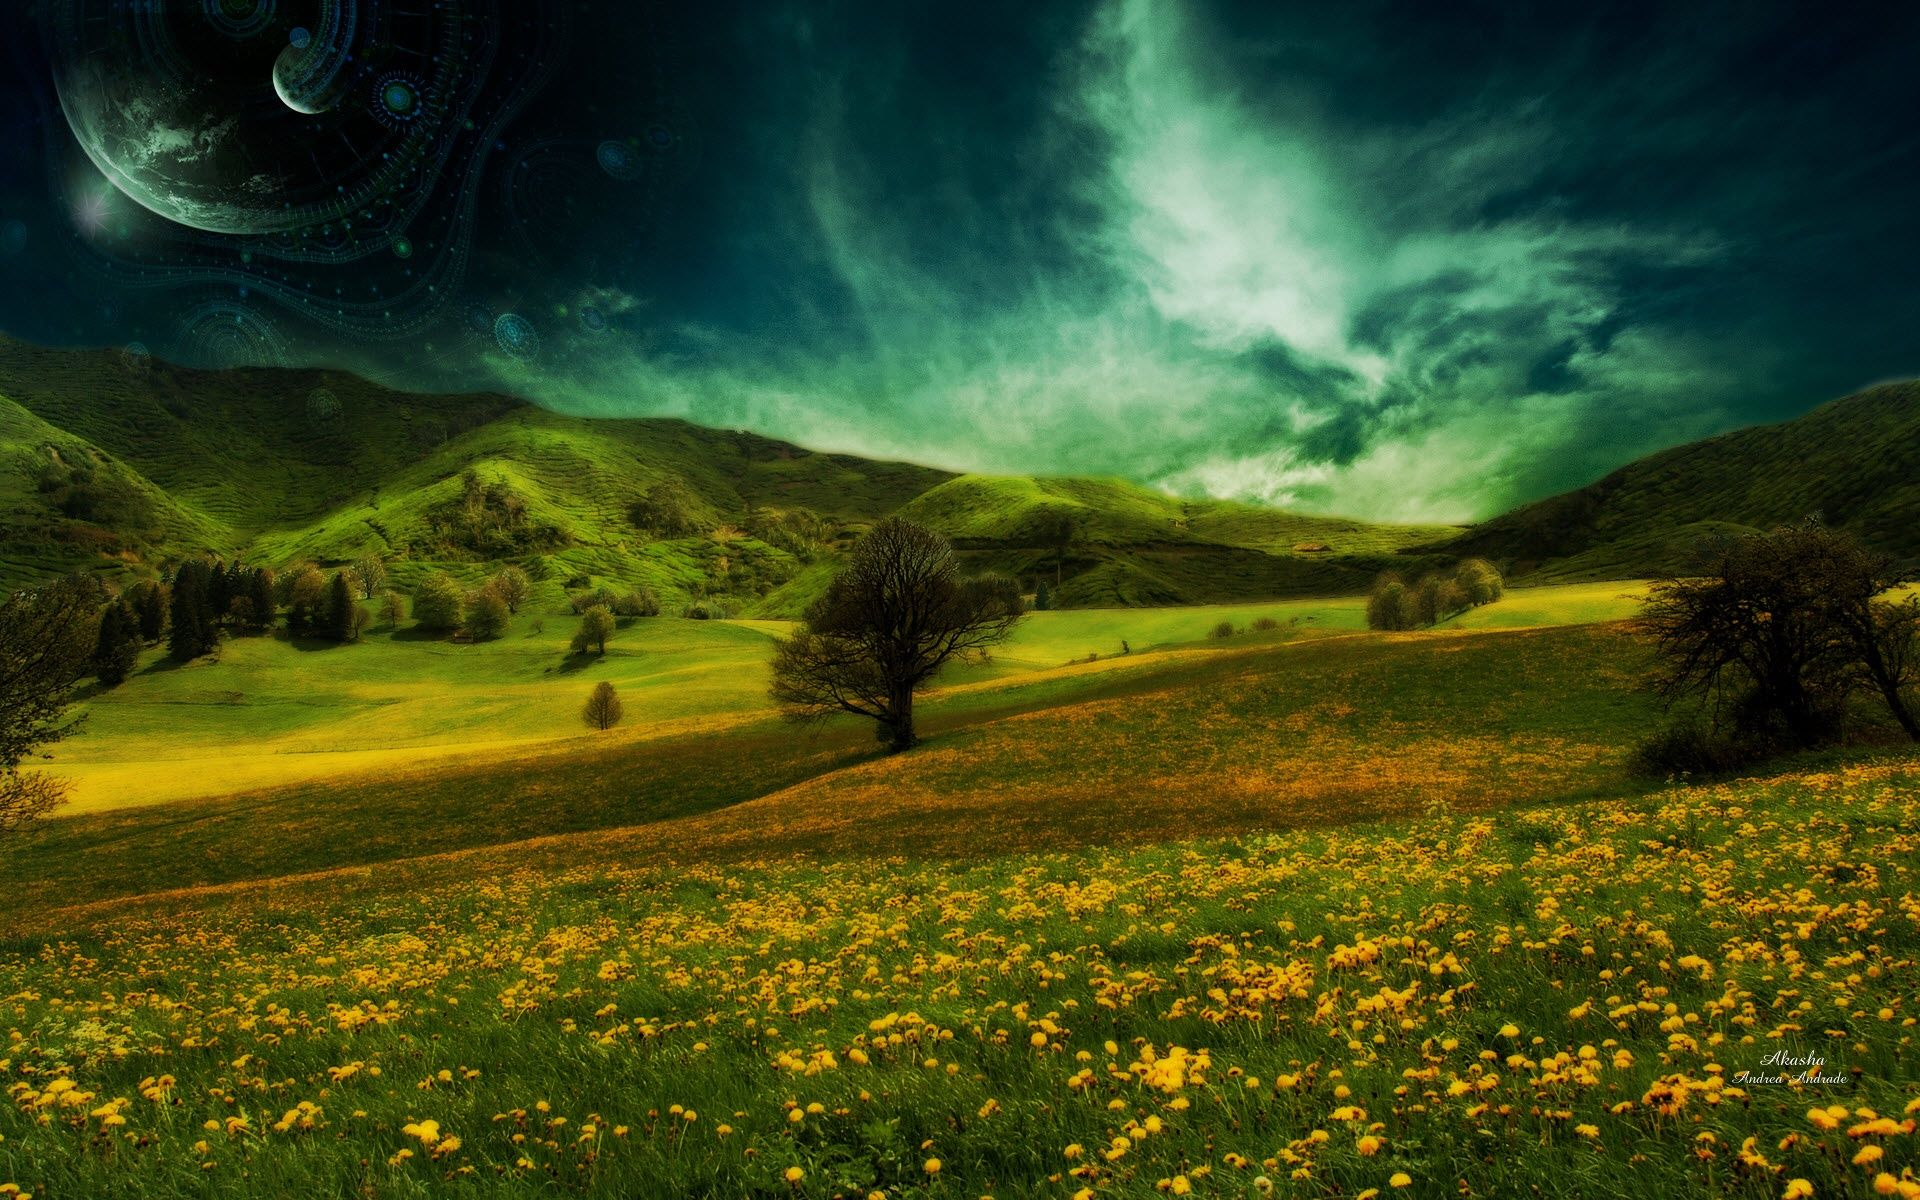 Dreamy Landscape High Definition Wallpapers Dreamy Landscapes Digital Art Photography Landscape Wallpaper